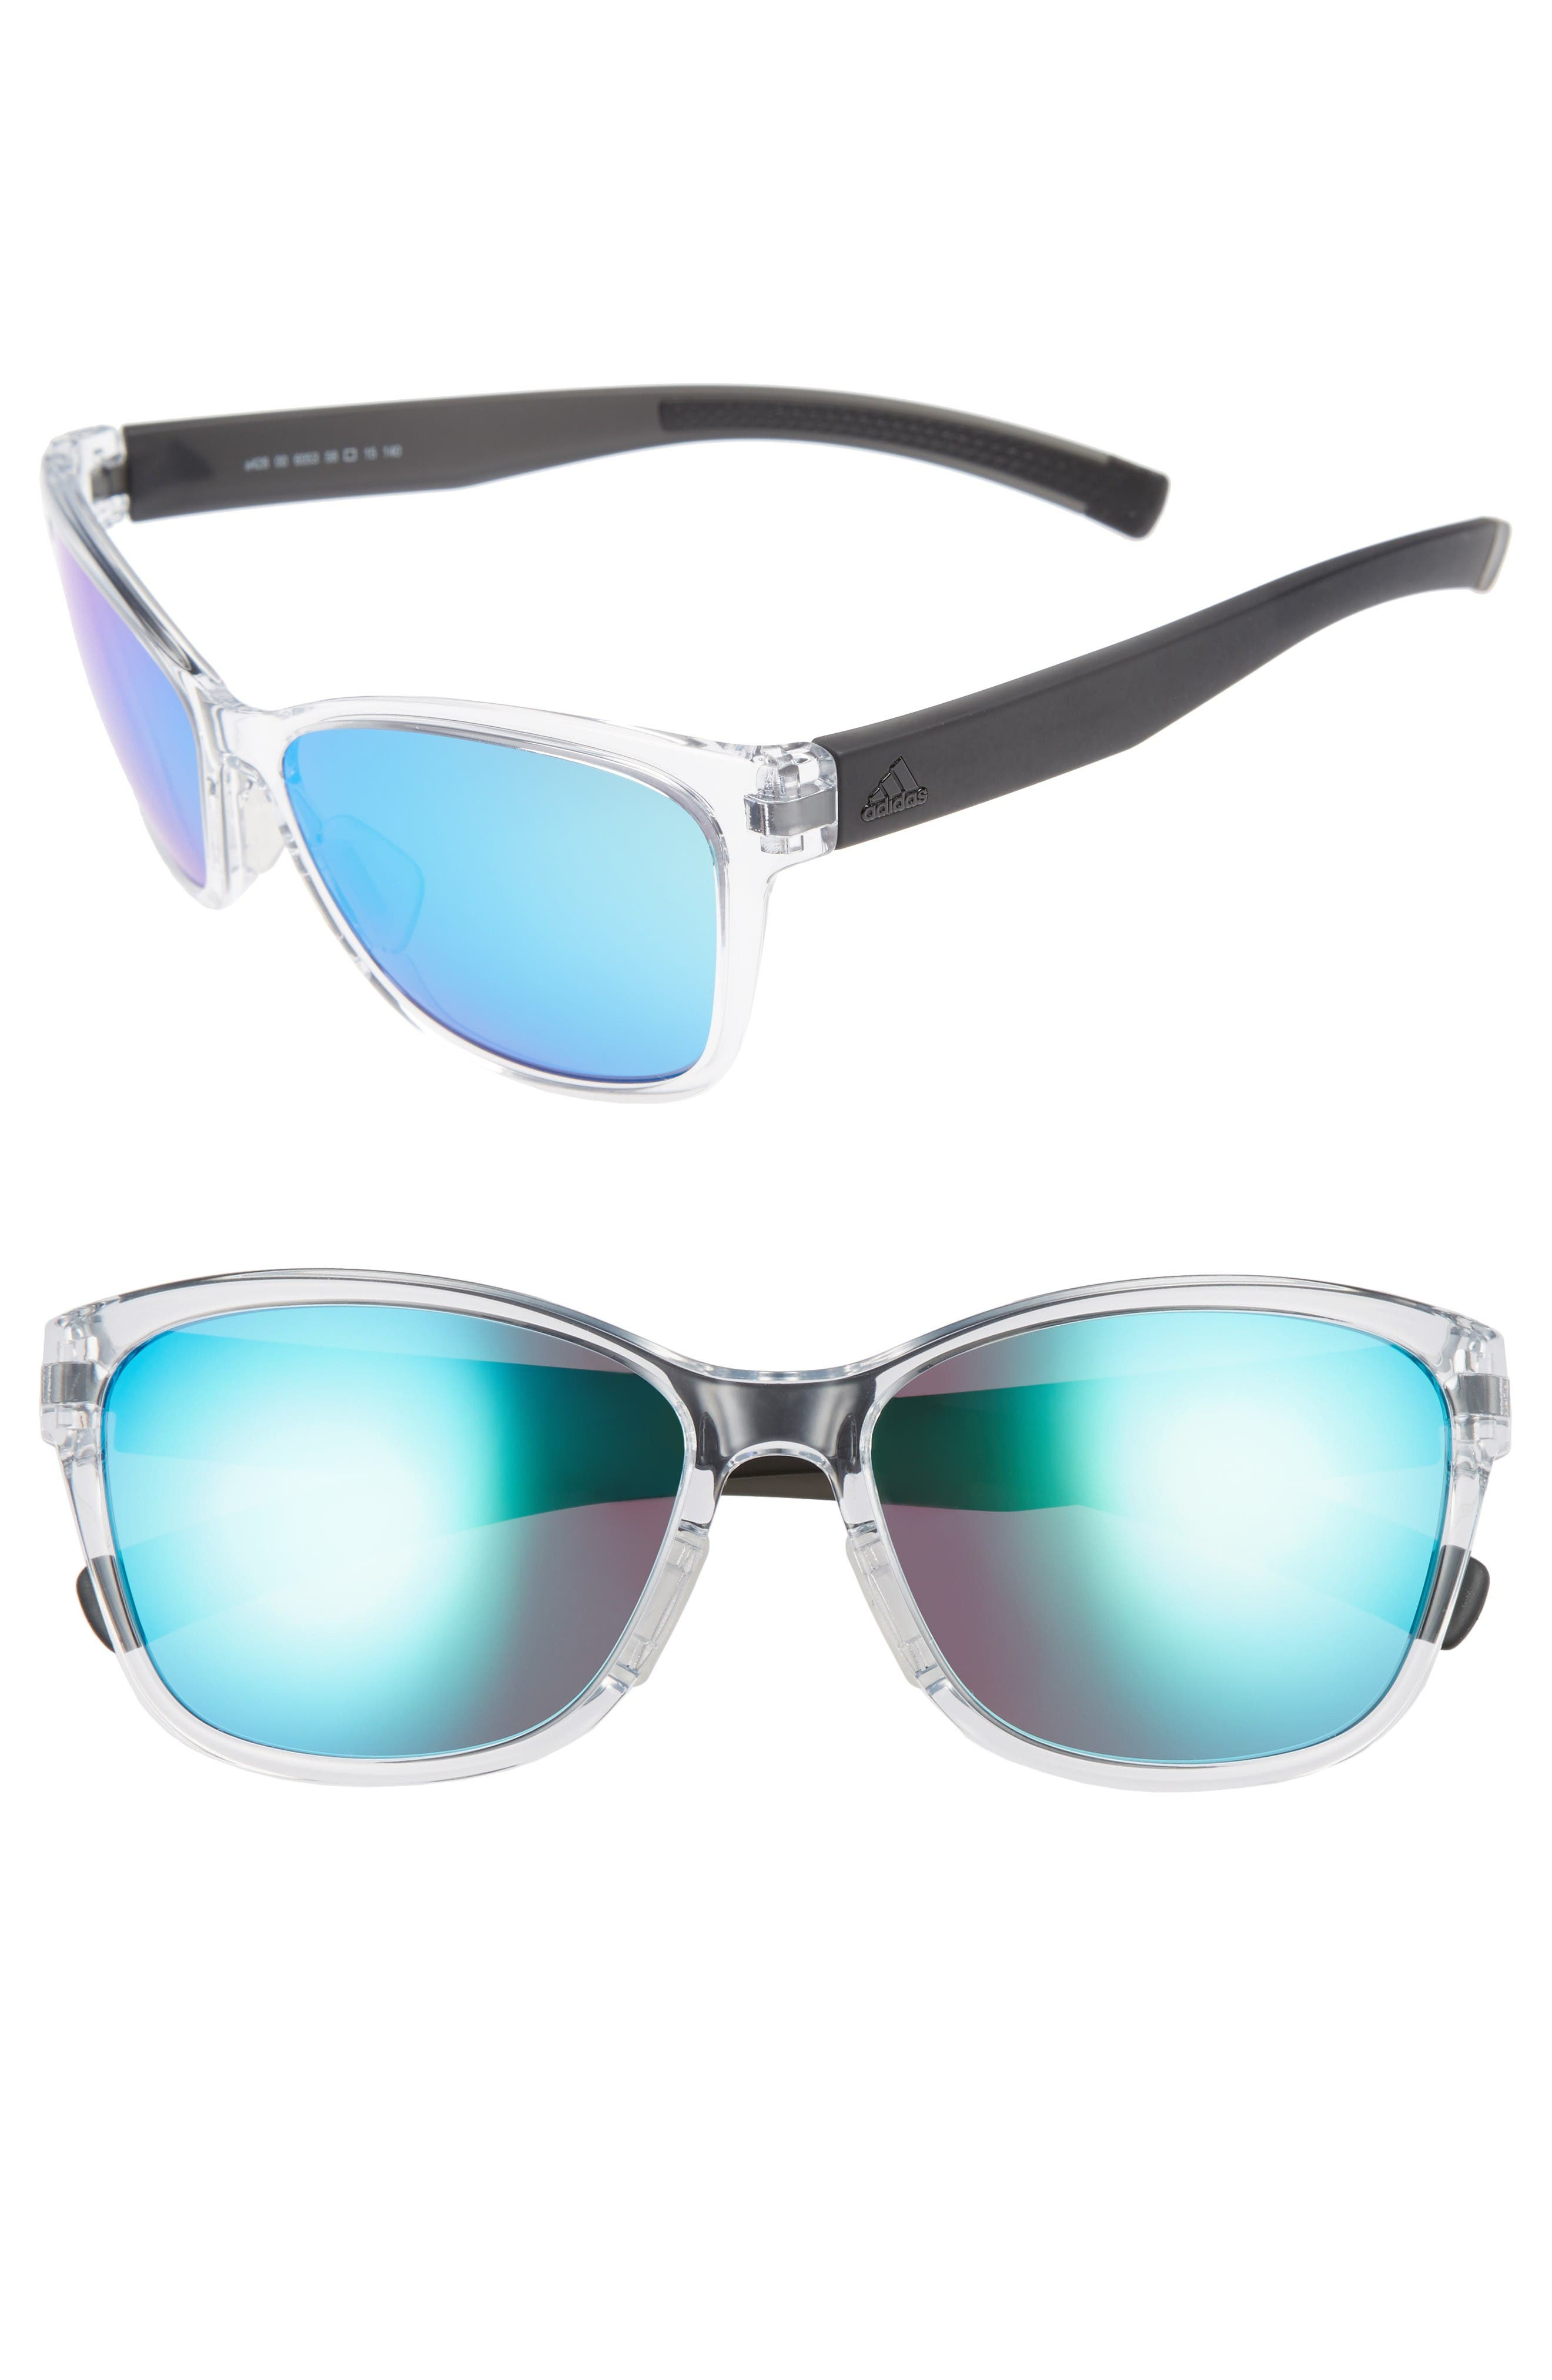 Excalate 58mm Mirrored Sunglasses,                             Main thumbnail 1, color,                             Crystal Clear/ Blue Mirror